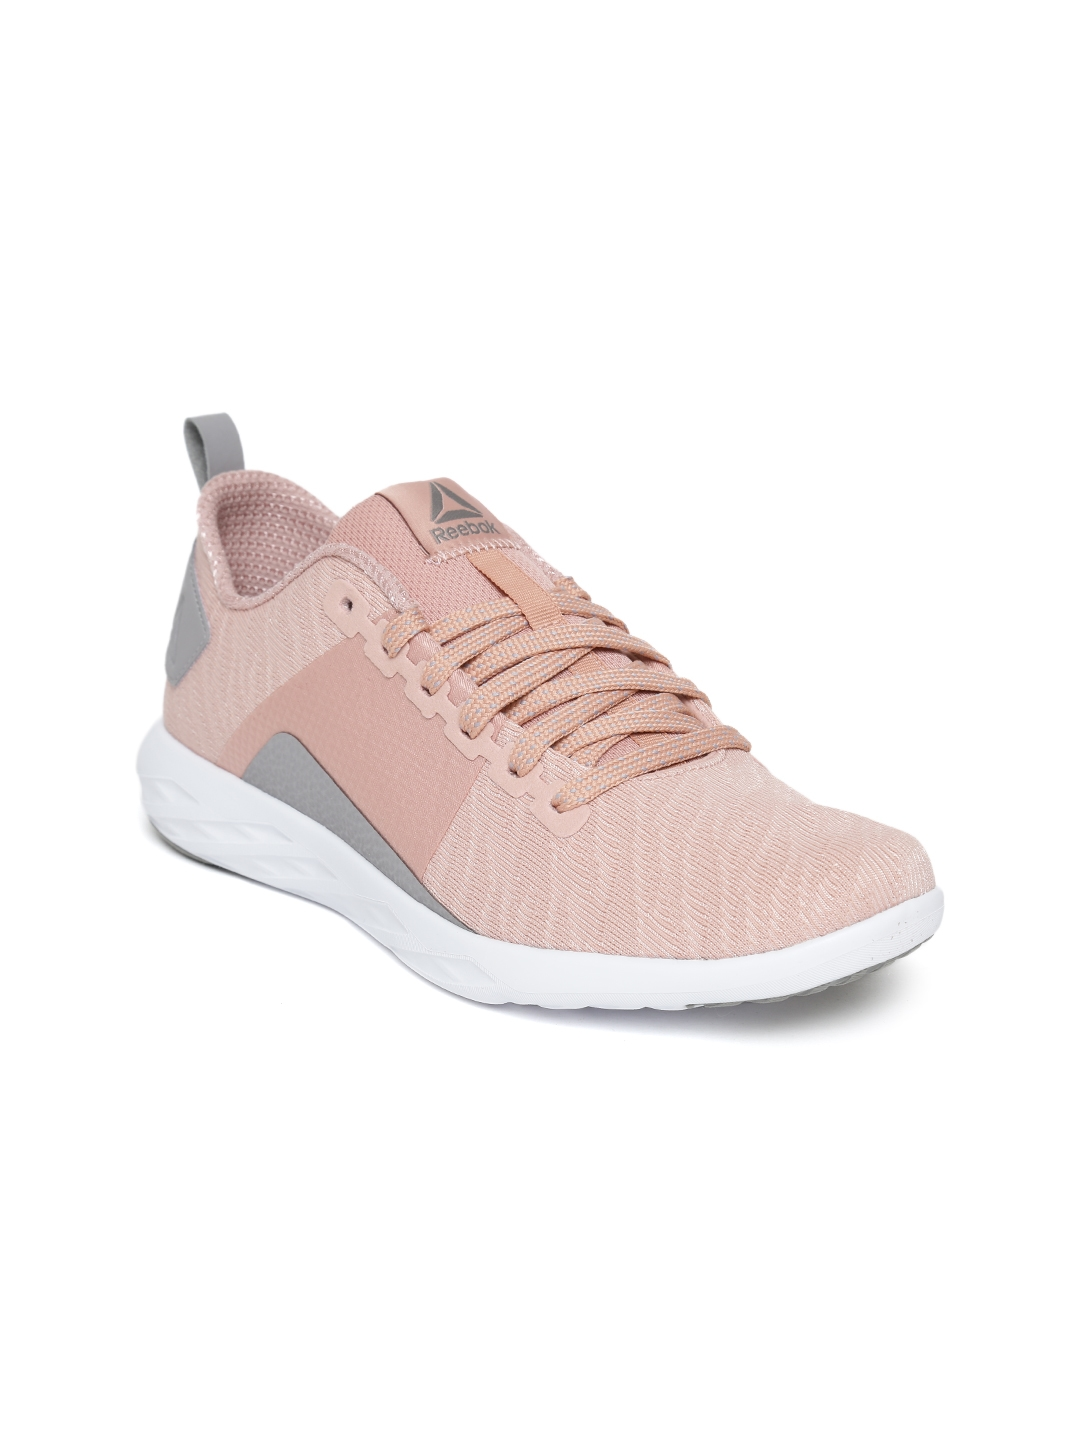 Buy Reebok Women Pink Astroride Walking Shoes - Sports Shoes for ... 700fb27ab